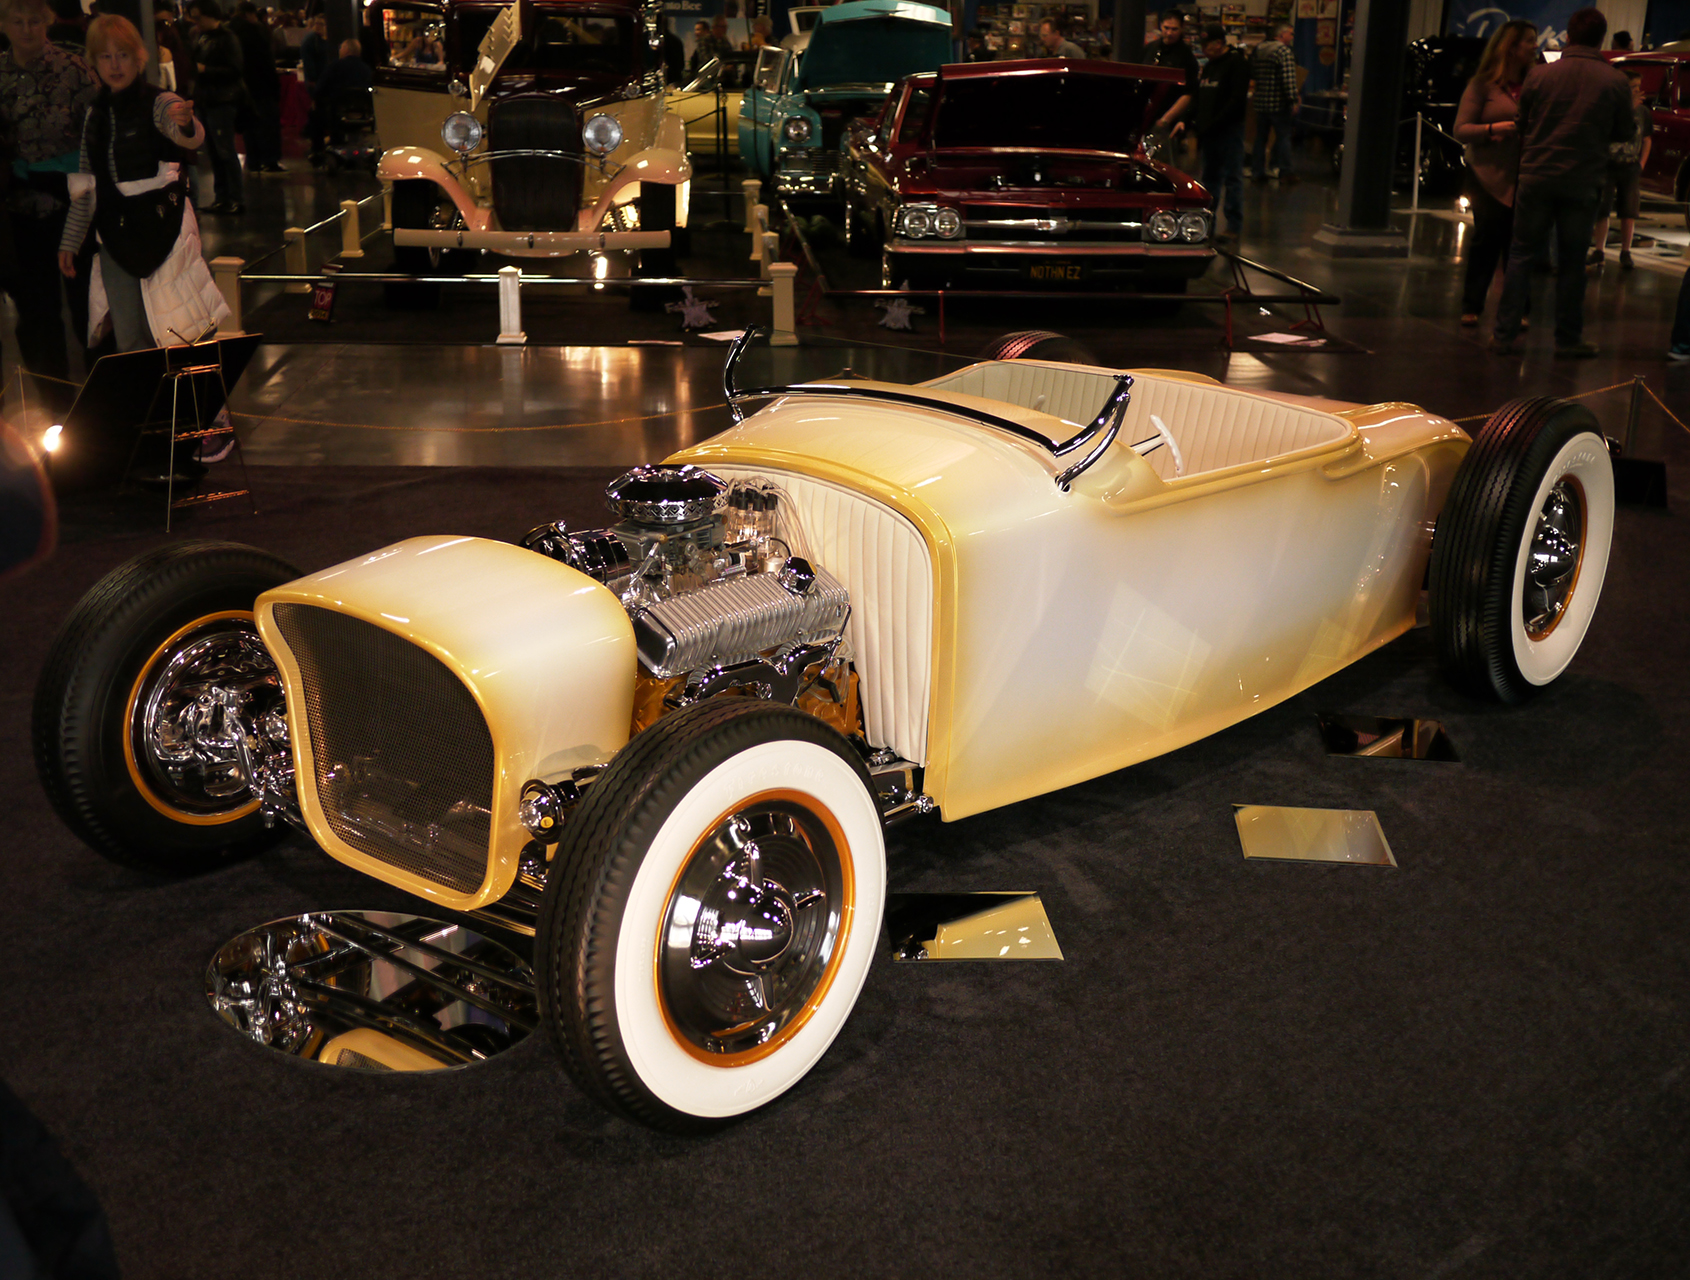 The fabulous Fools Goldster. Matt Taylor's '27 Dodge roadster. Small boys and grown men were seen gazing at it with mouths agape.